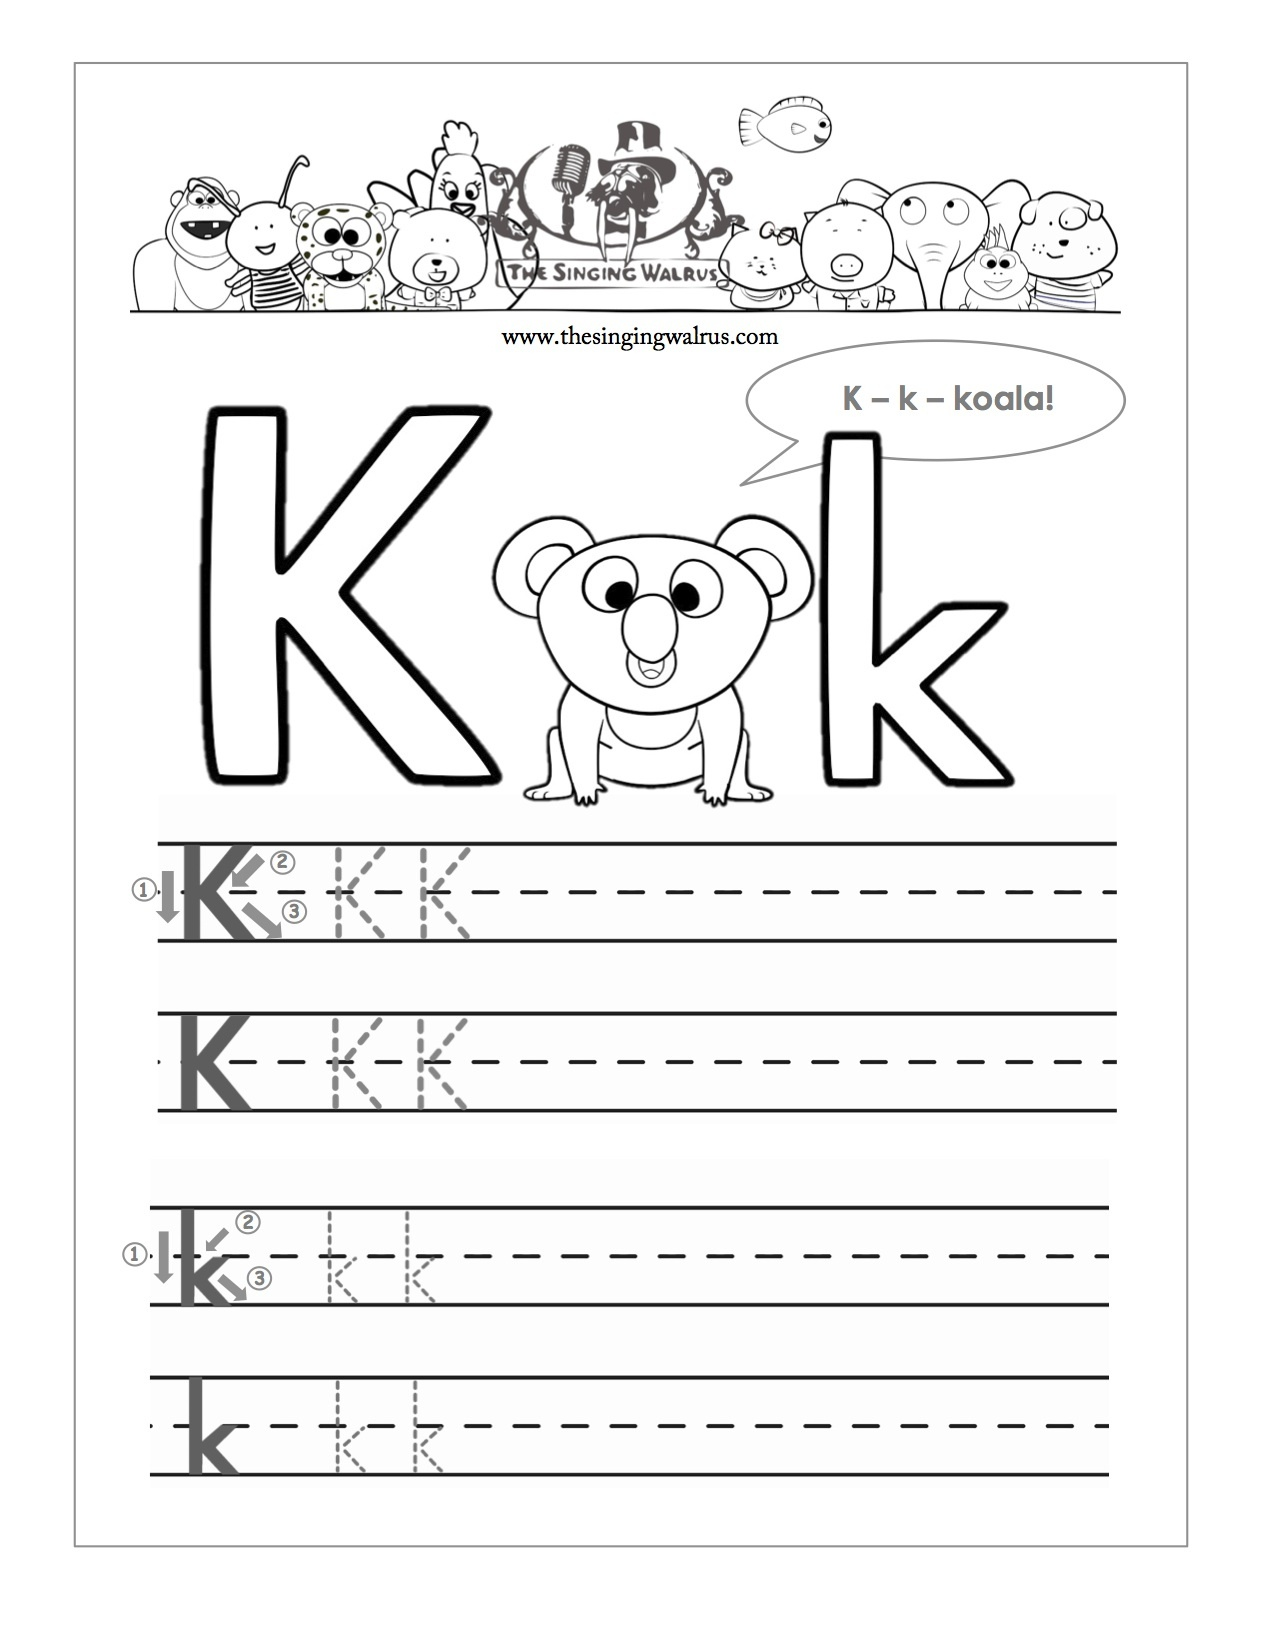 15 Learning The Letter K Worksheets | Kittybabylove - Free Printable Letter K Worksheets